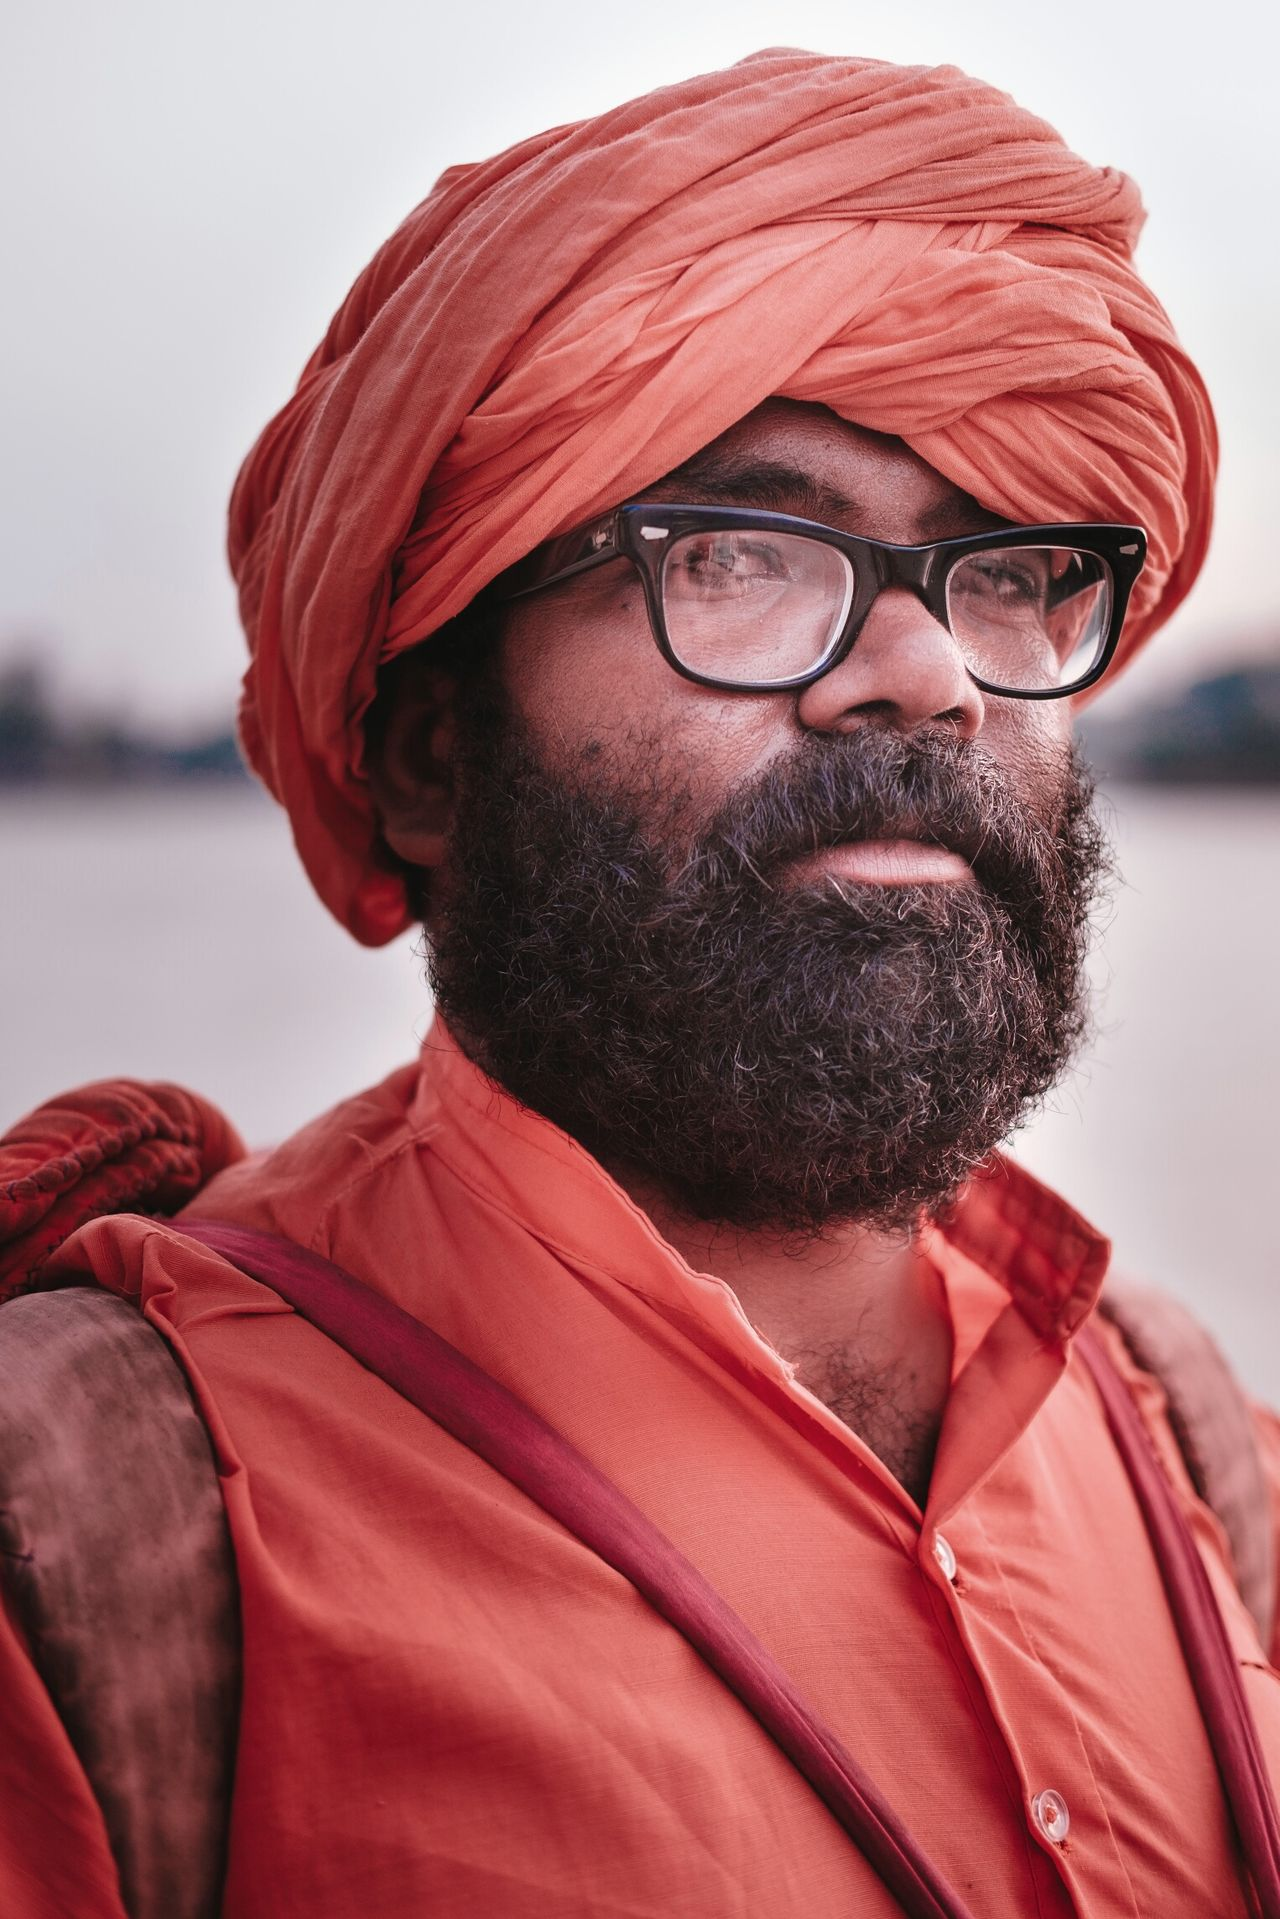 Sadhu of India Sadhu from India Sadhu Rishikeshdiaries Rishikesh. Let's Go. Together. EyeEmNewHere portrait of a stranger The Portraitist - 2017 EyeEm Awards The Street Photographer - 2017 EyeEm Awards arts culture and entertainment Photojournalism indiaportraits india_clicks indiaincredible Live for the Story indianstories fujixt1 everybodystreet passionpassport streetphotographyindia indiapictures streetphotography streetphotography urbanphotography EyeEmStreetshots